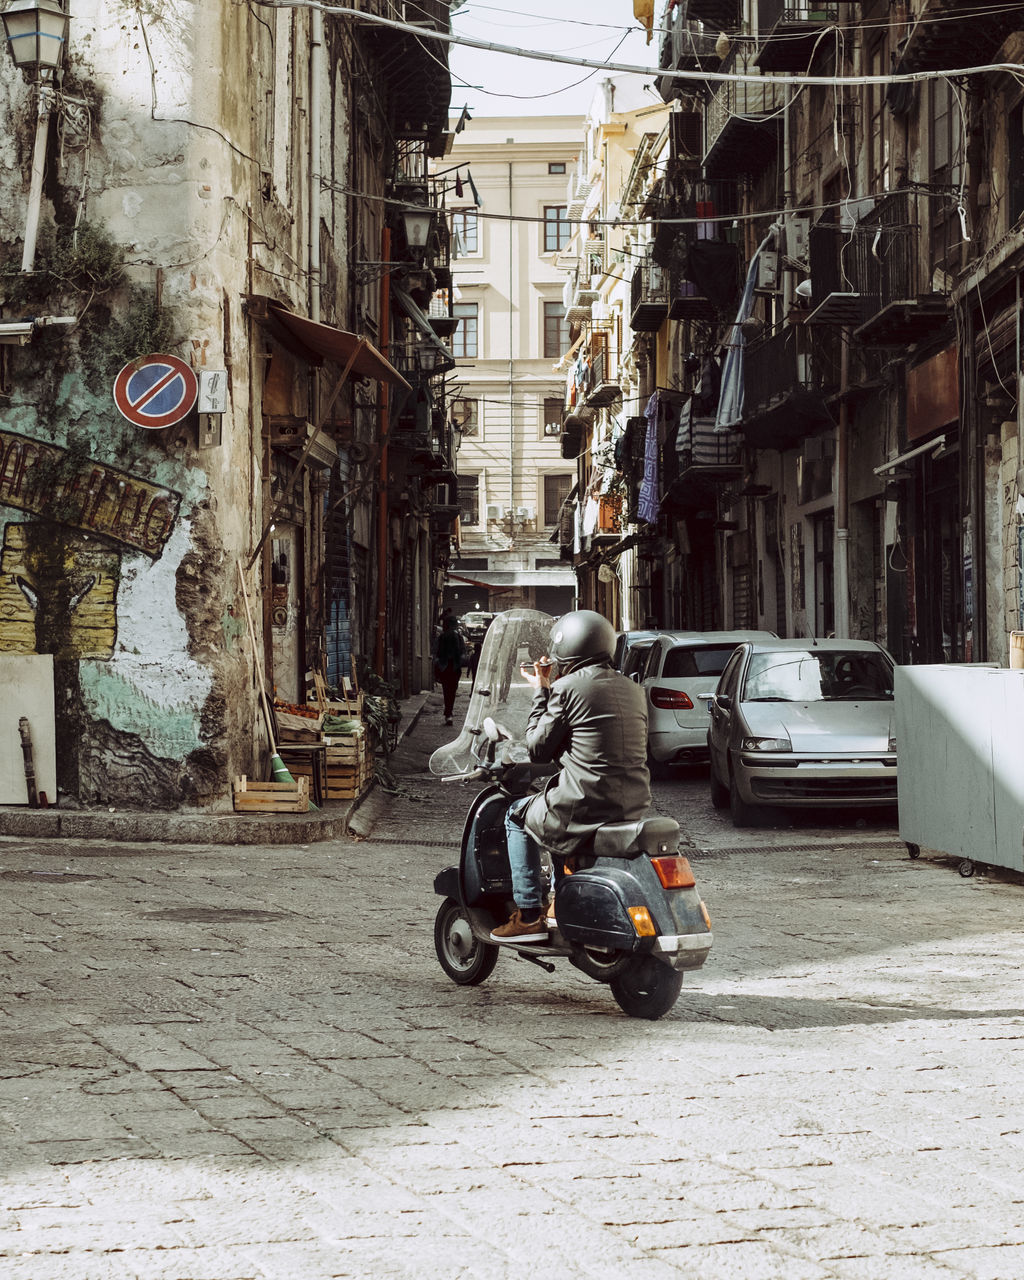 Motorcycle On Street In City